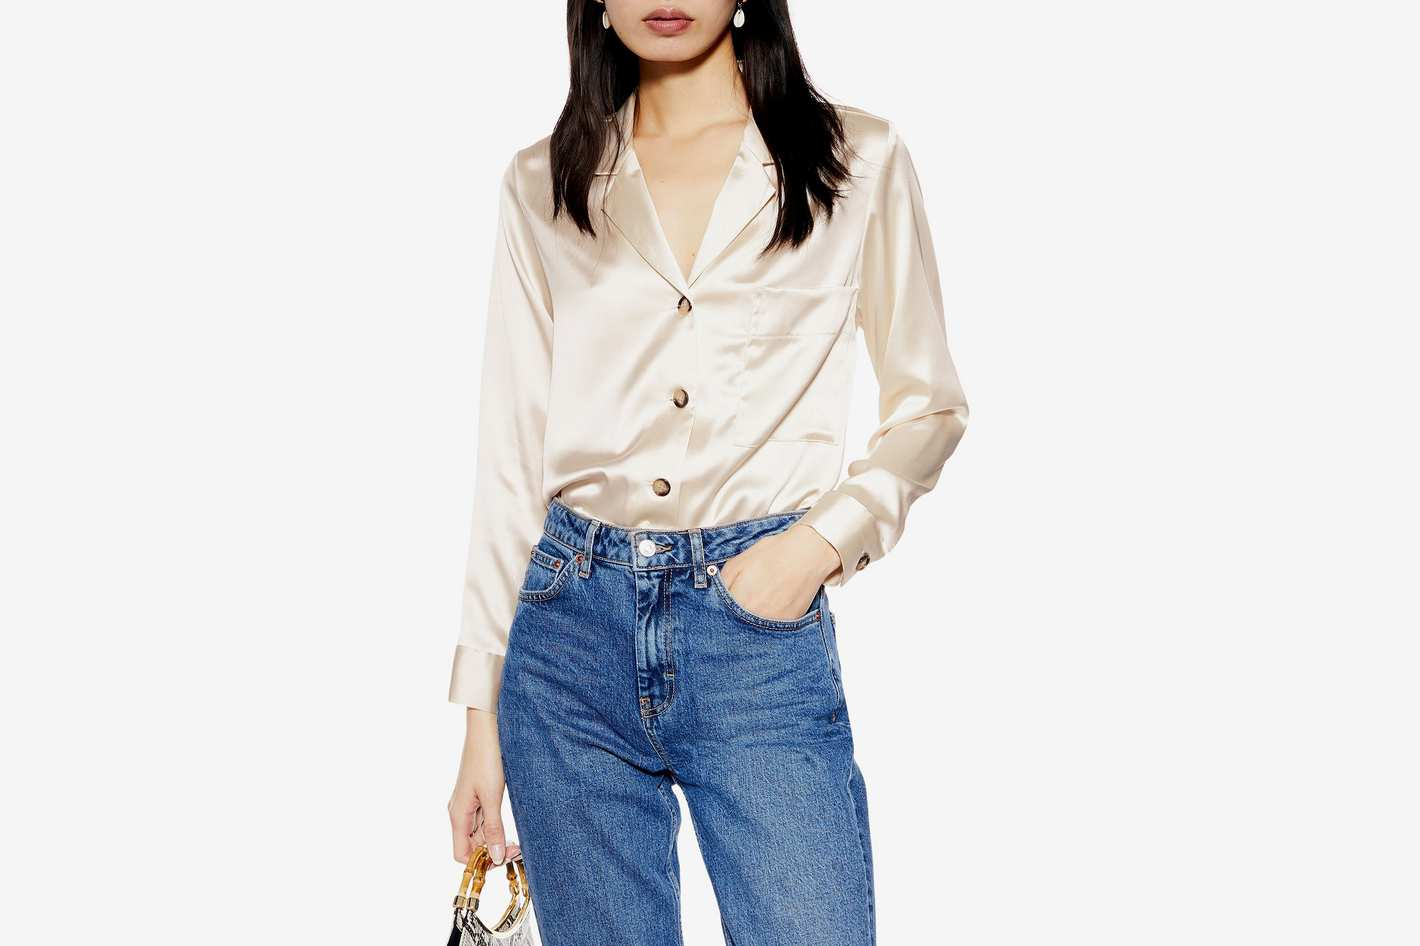 Topshop Satin Button-Up Shirt